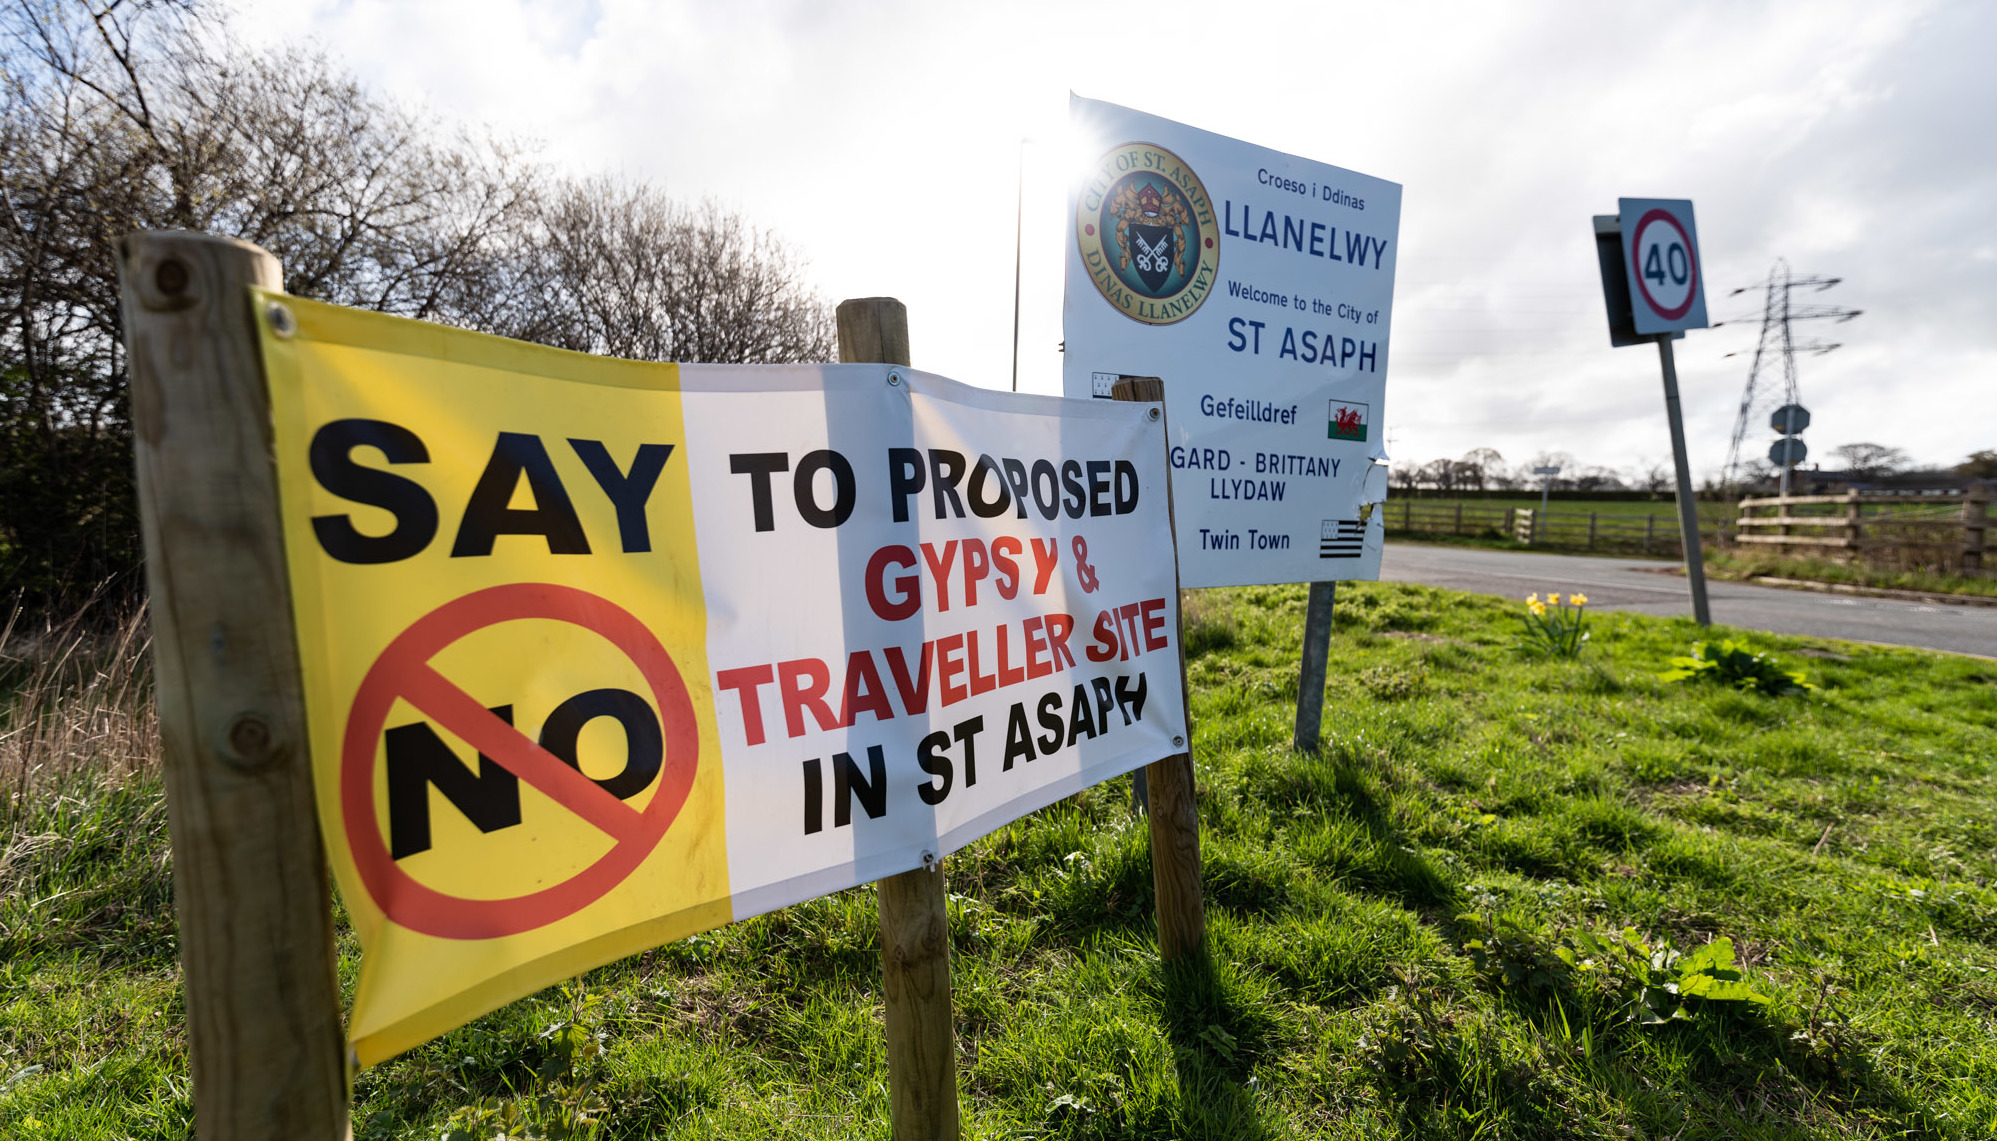 Signage near to the proposed gypsy and traveller site in St Asaph. Picture: Don Jackson-Wyatt, DJW250319